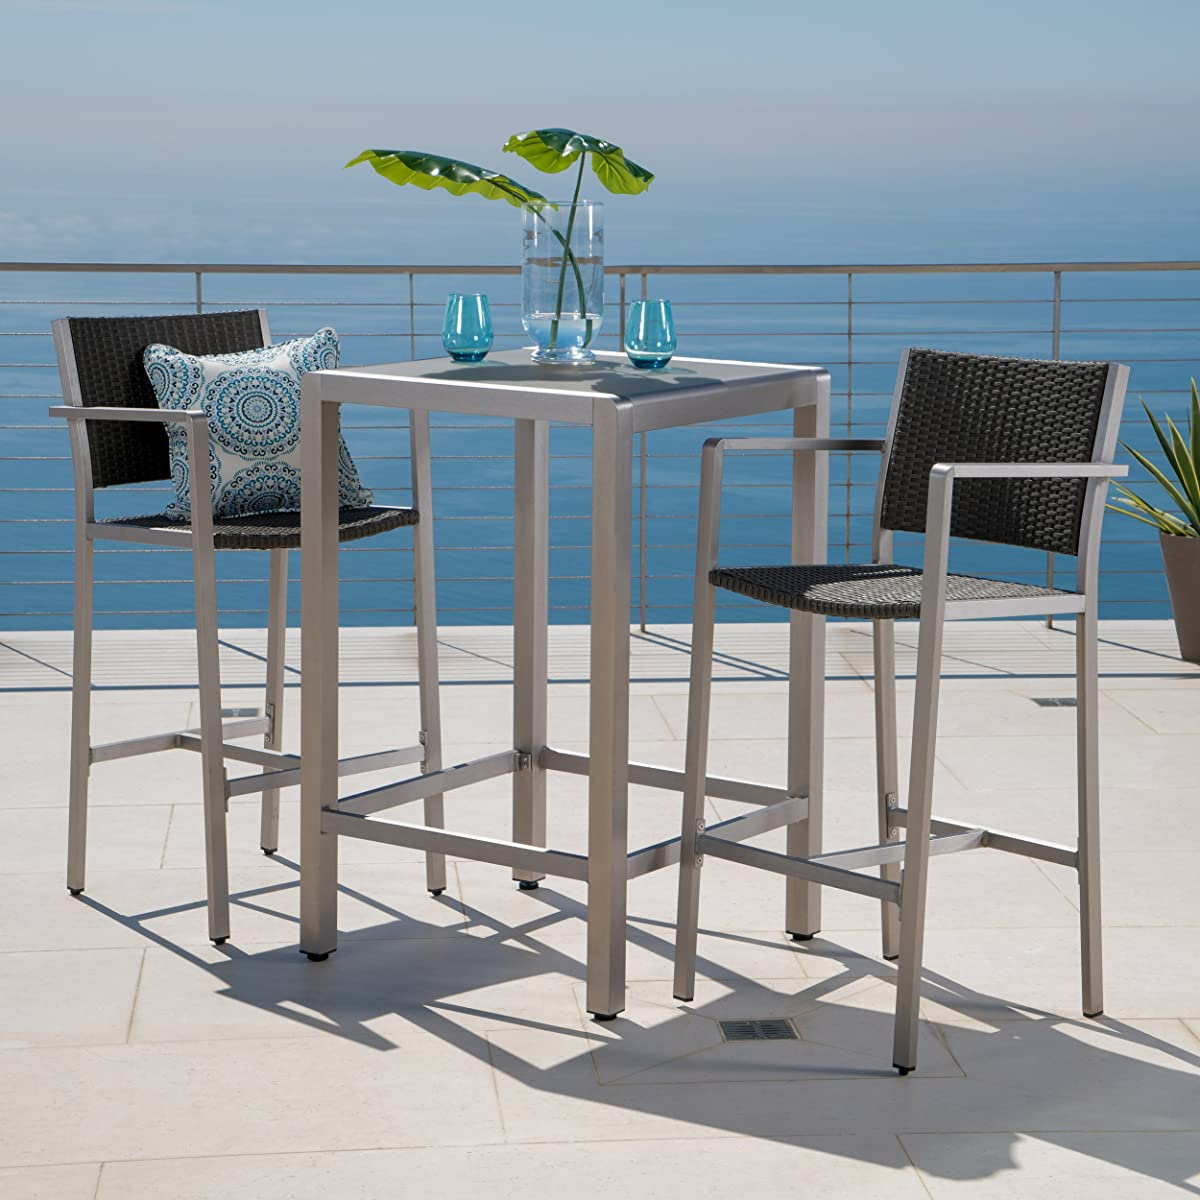 Crested Bay Patio Furniture ~ 3 Piece Grey Outdoor Wicker and Aluminum Bar Set with Tempered Glass Top